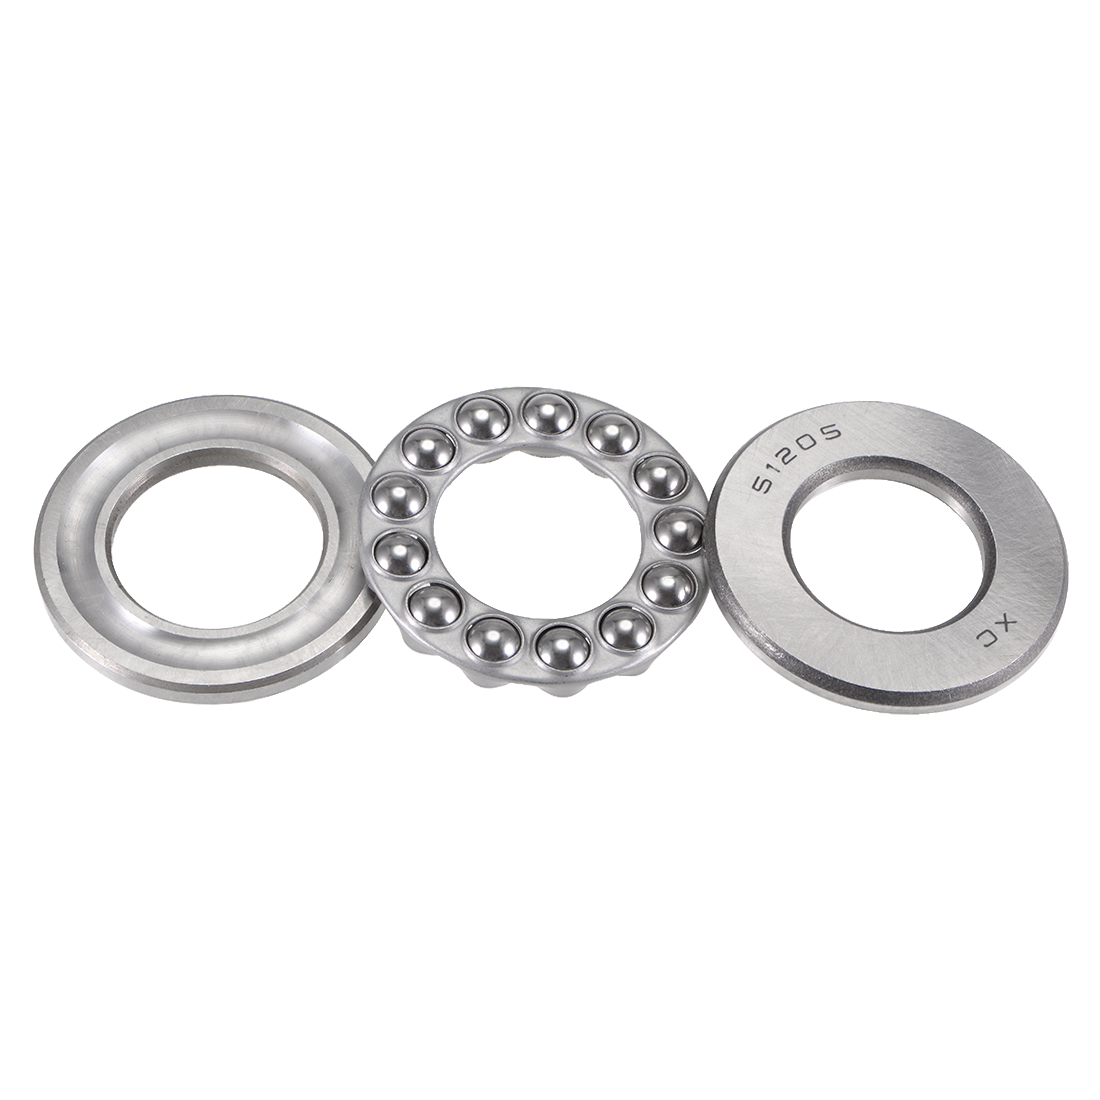 Carbon Steel Ball Thrust Bearing 51205 25mm x 47mm x 15mm